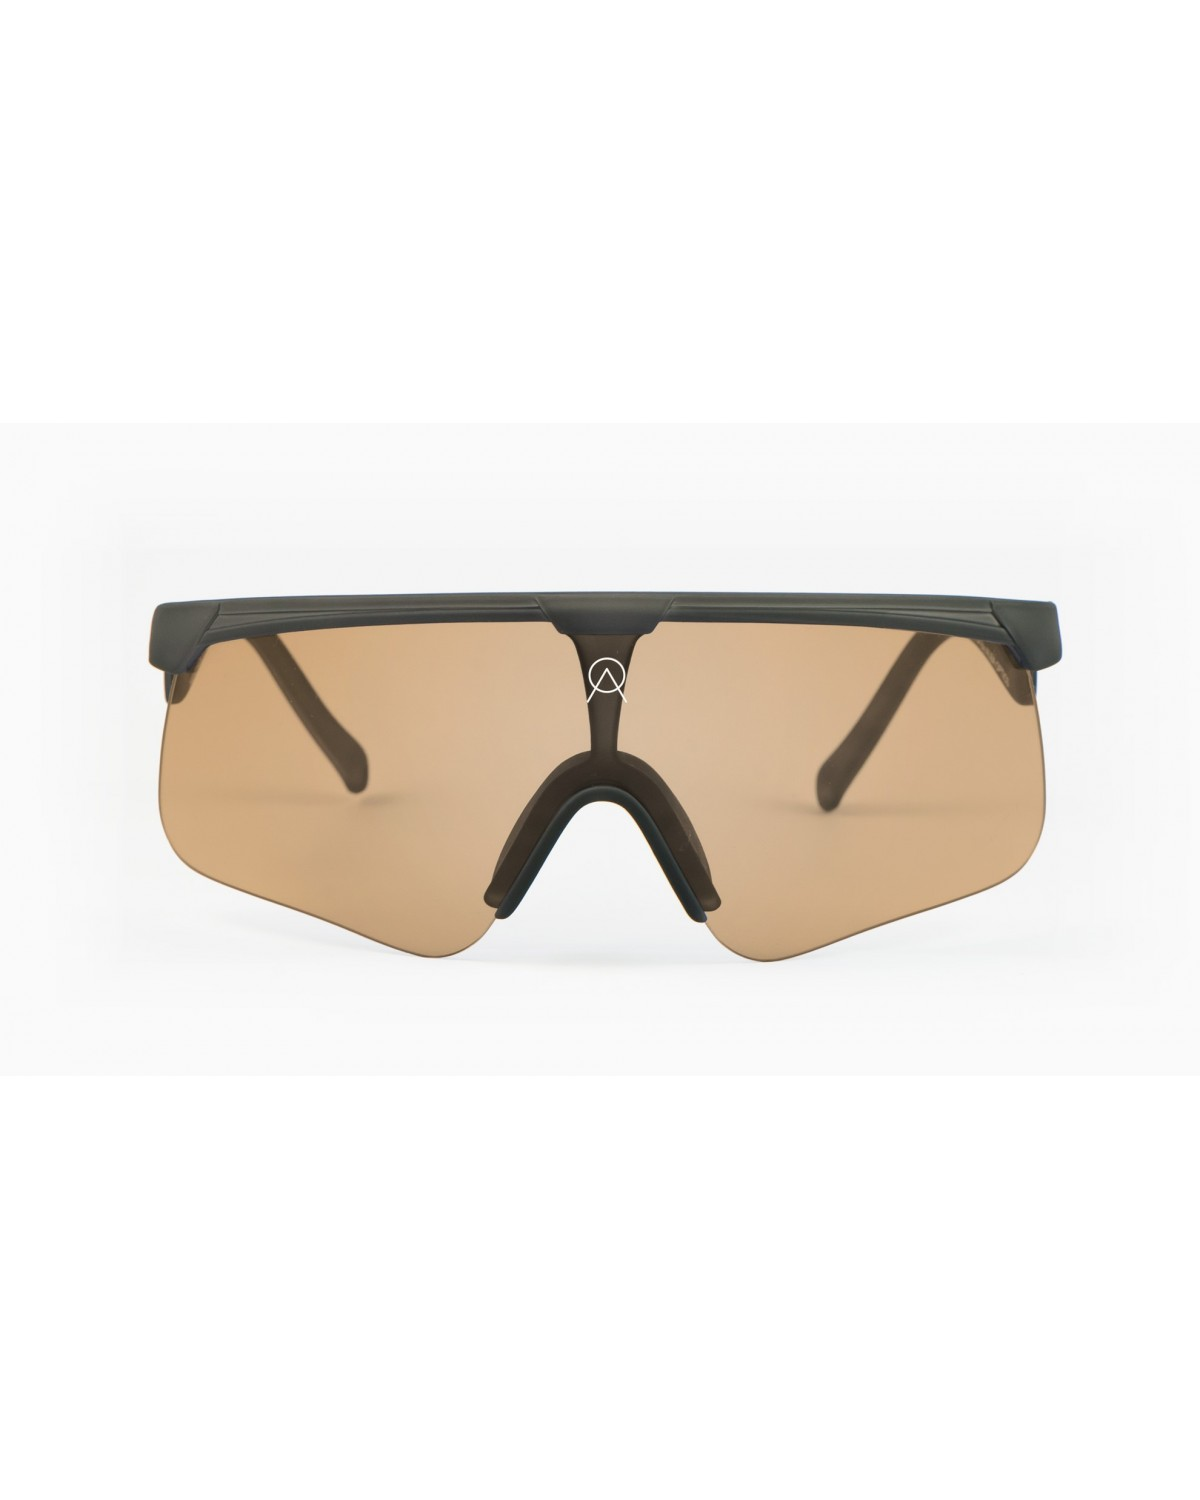 Alba Optics Delta Tarmac Grey Retro Radbrille